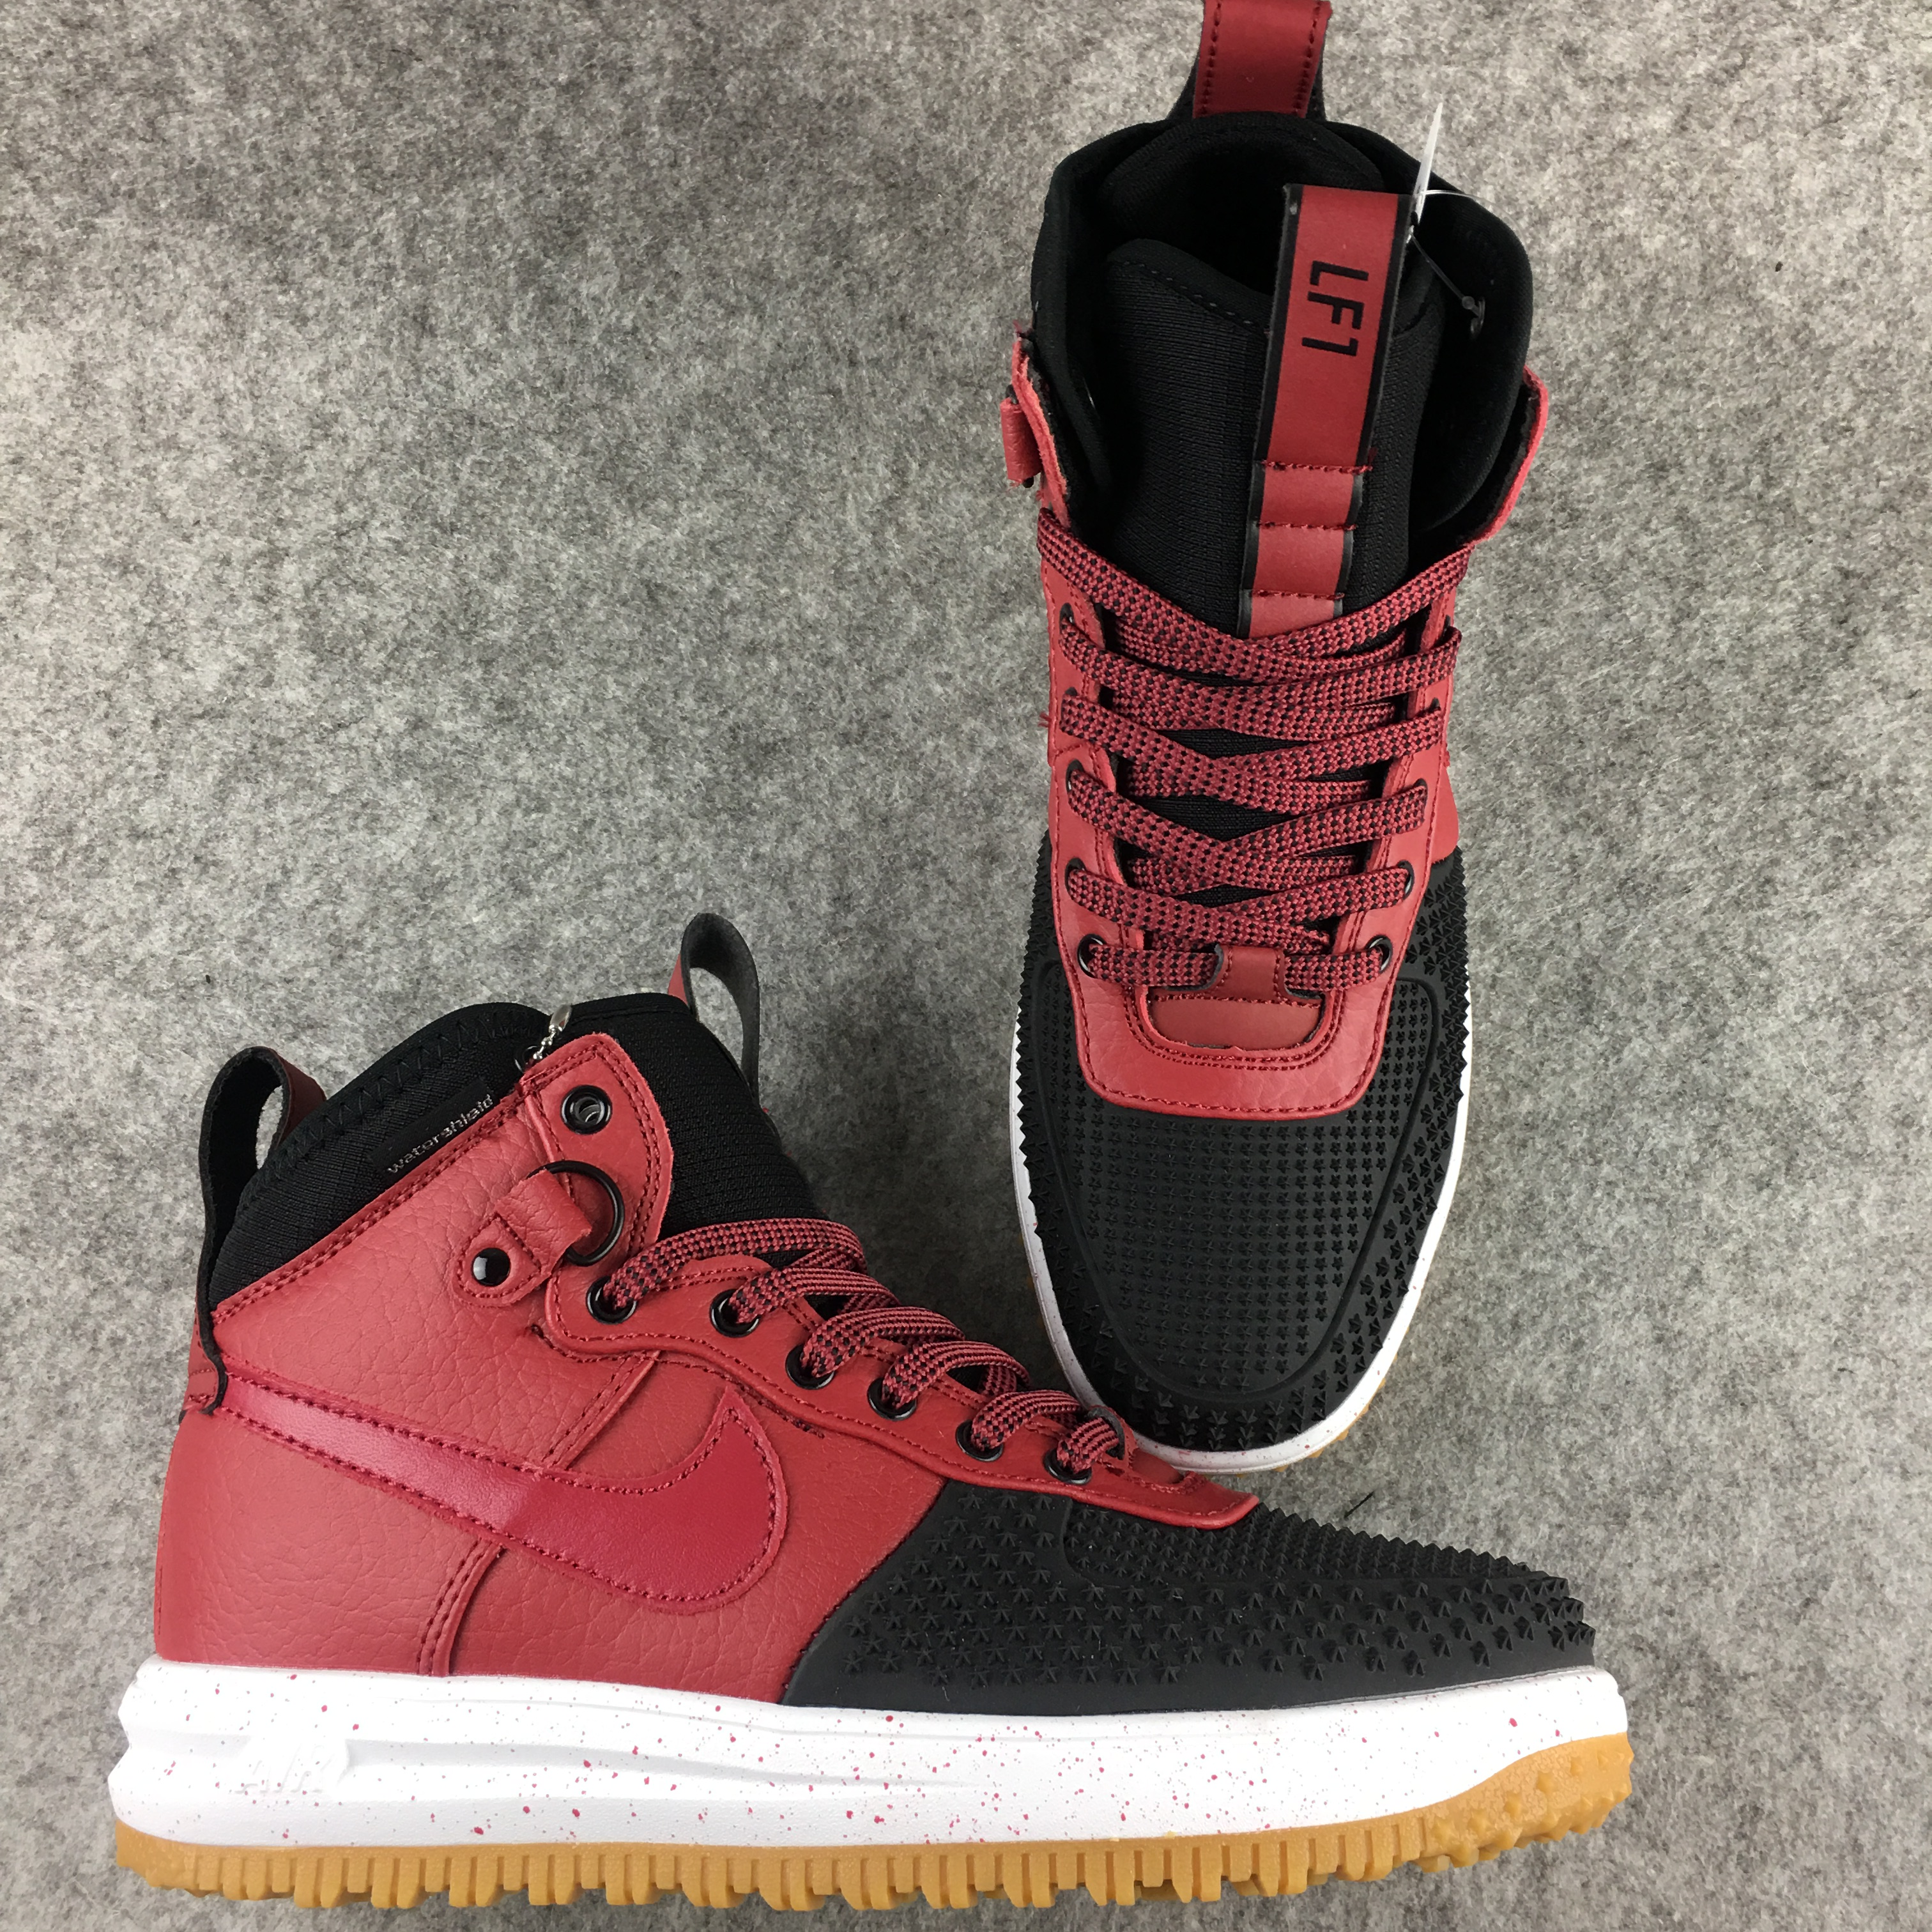 New Nike Lunar Force 1 Wine Red Black Shoes